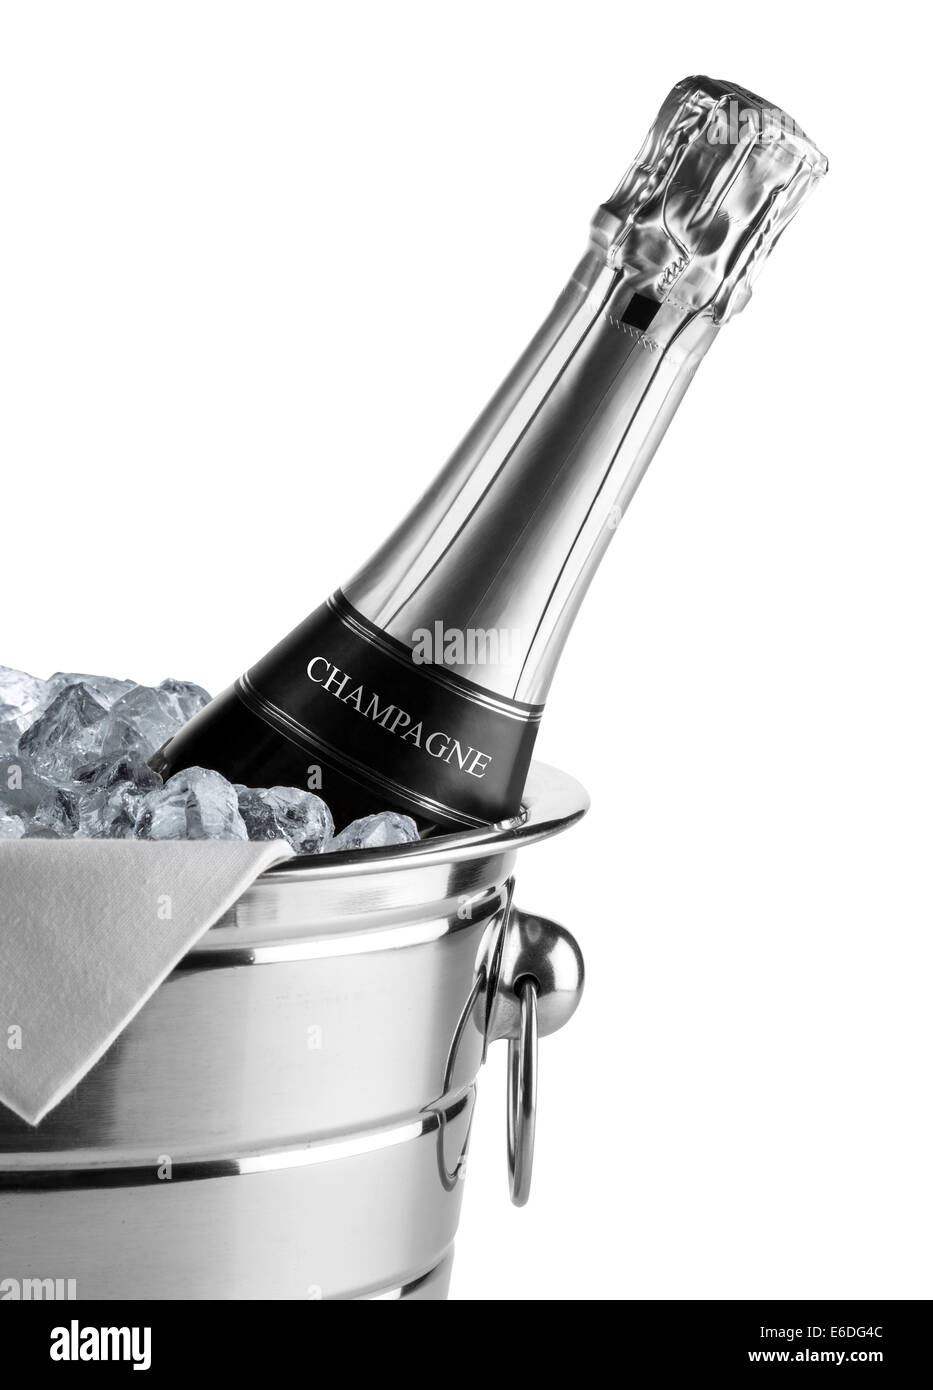 bottle of champagne in cooler - Stock Image